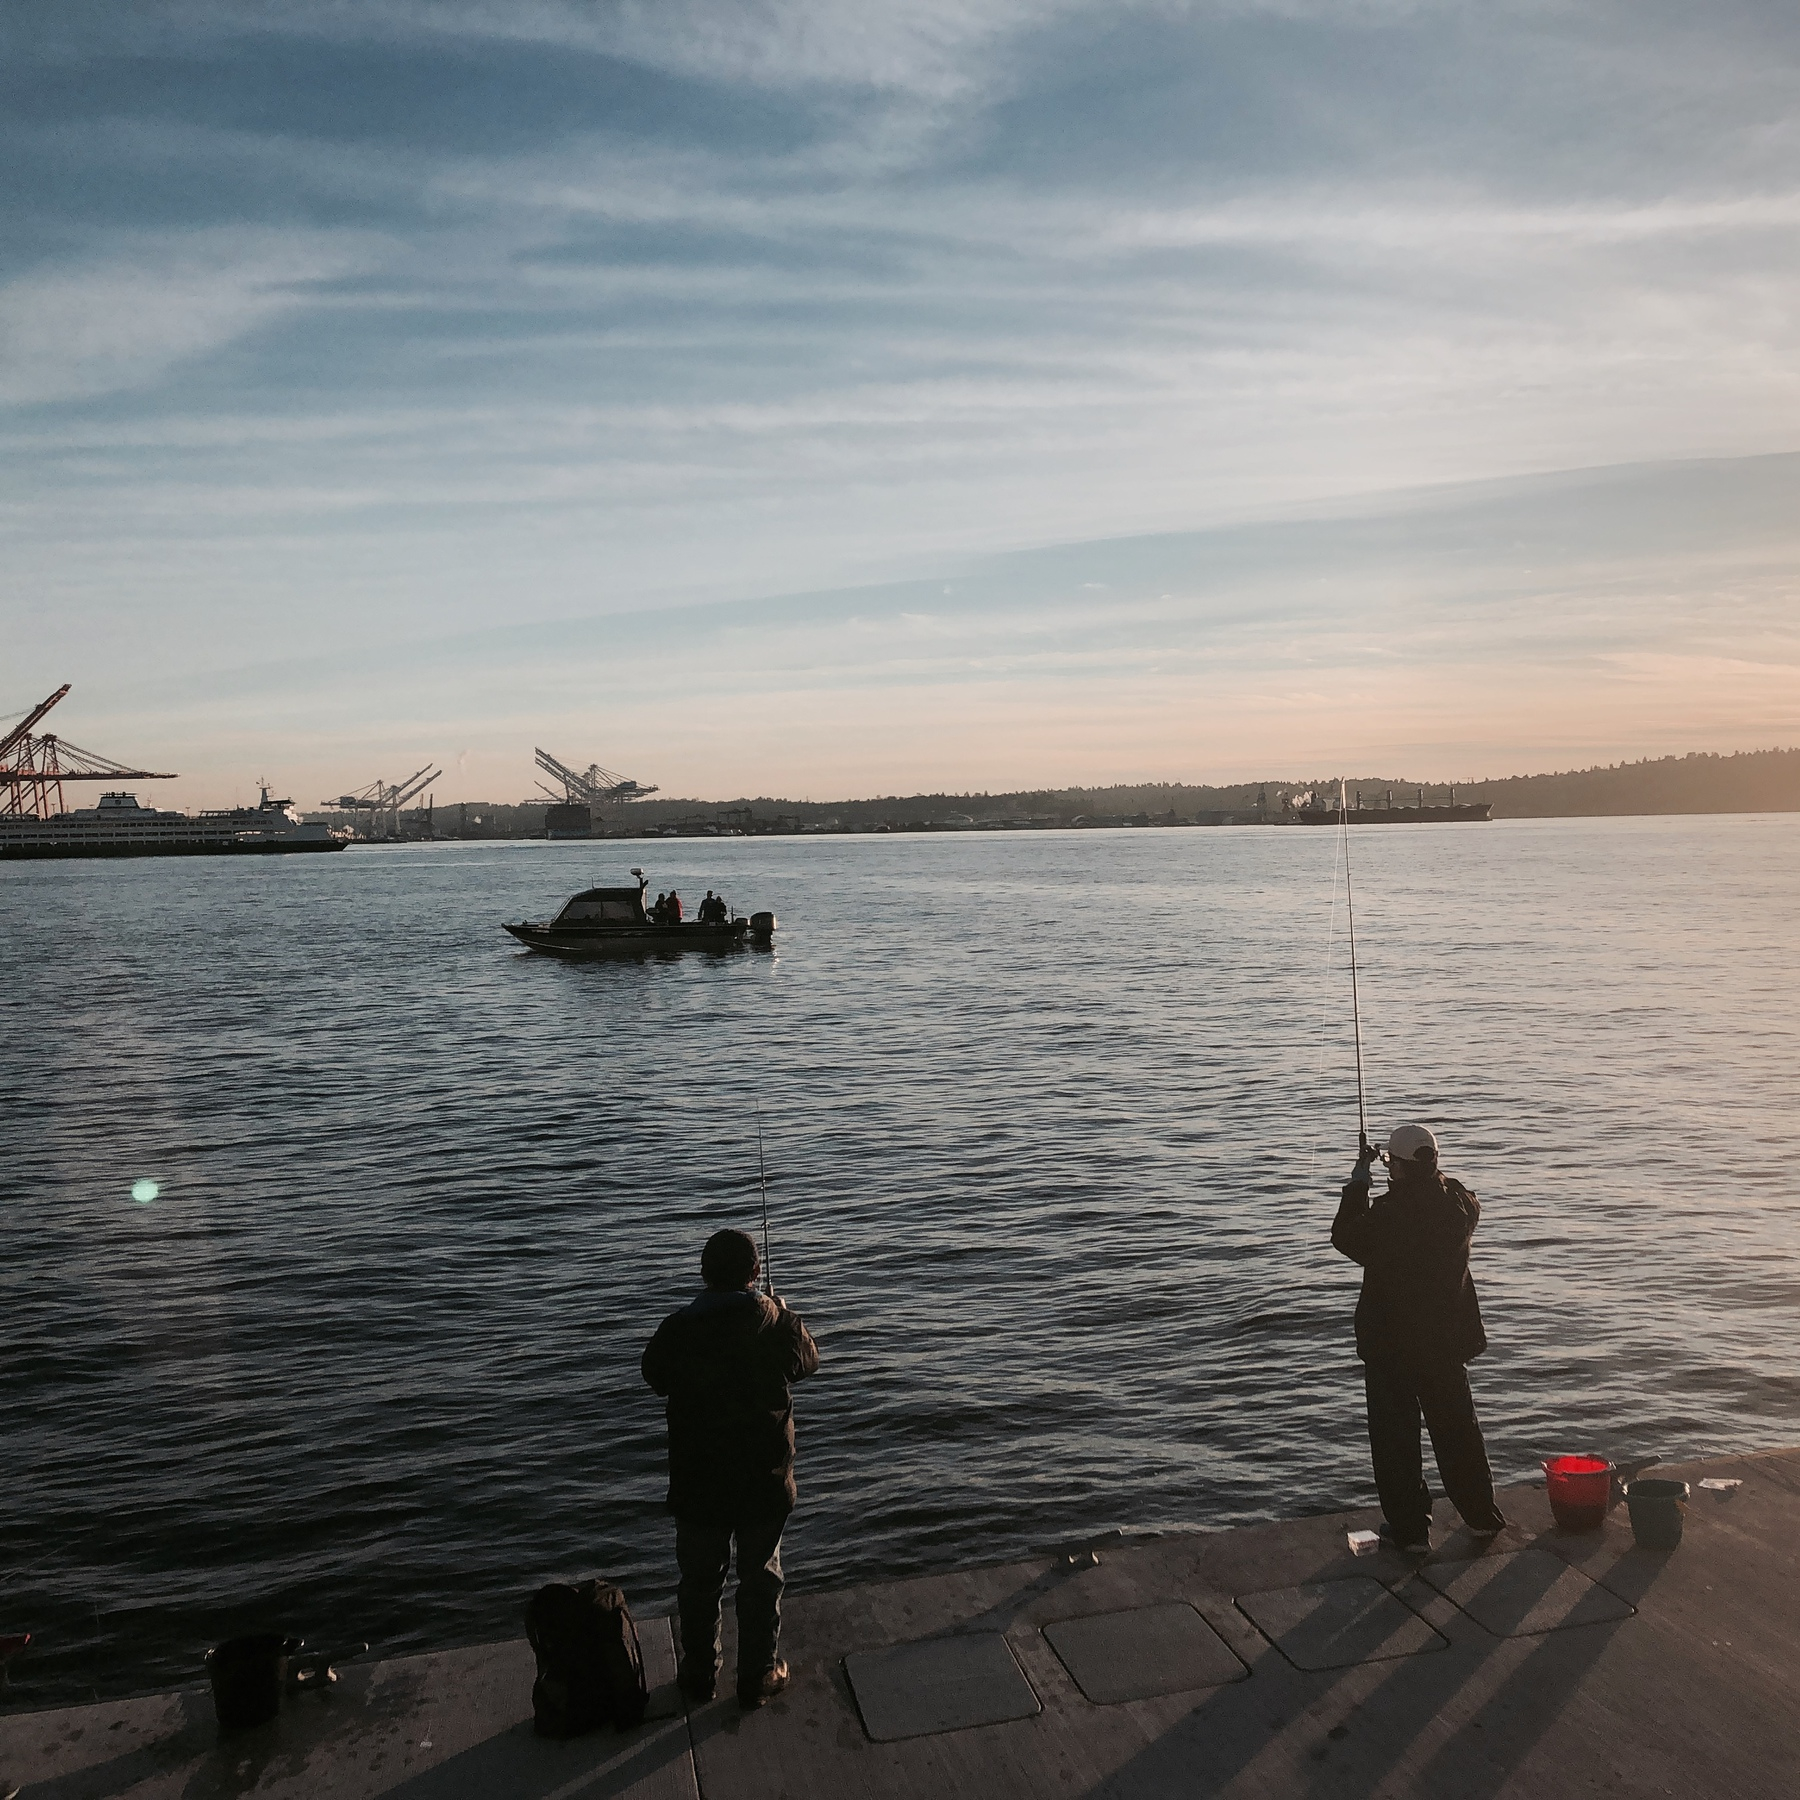 Two men fish on a concrete pier. A small boat out on the bay has fishermen in the back.